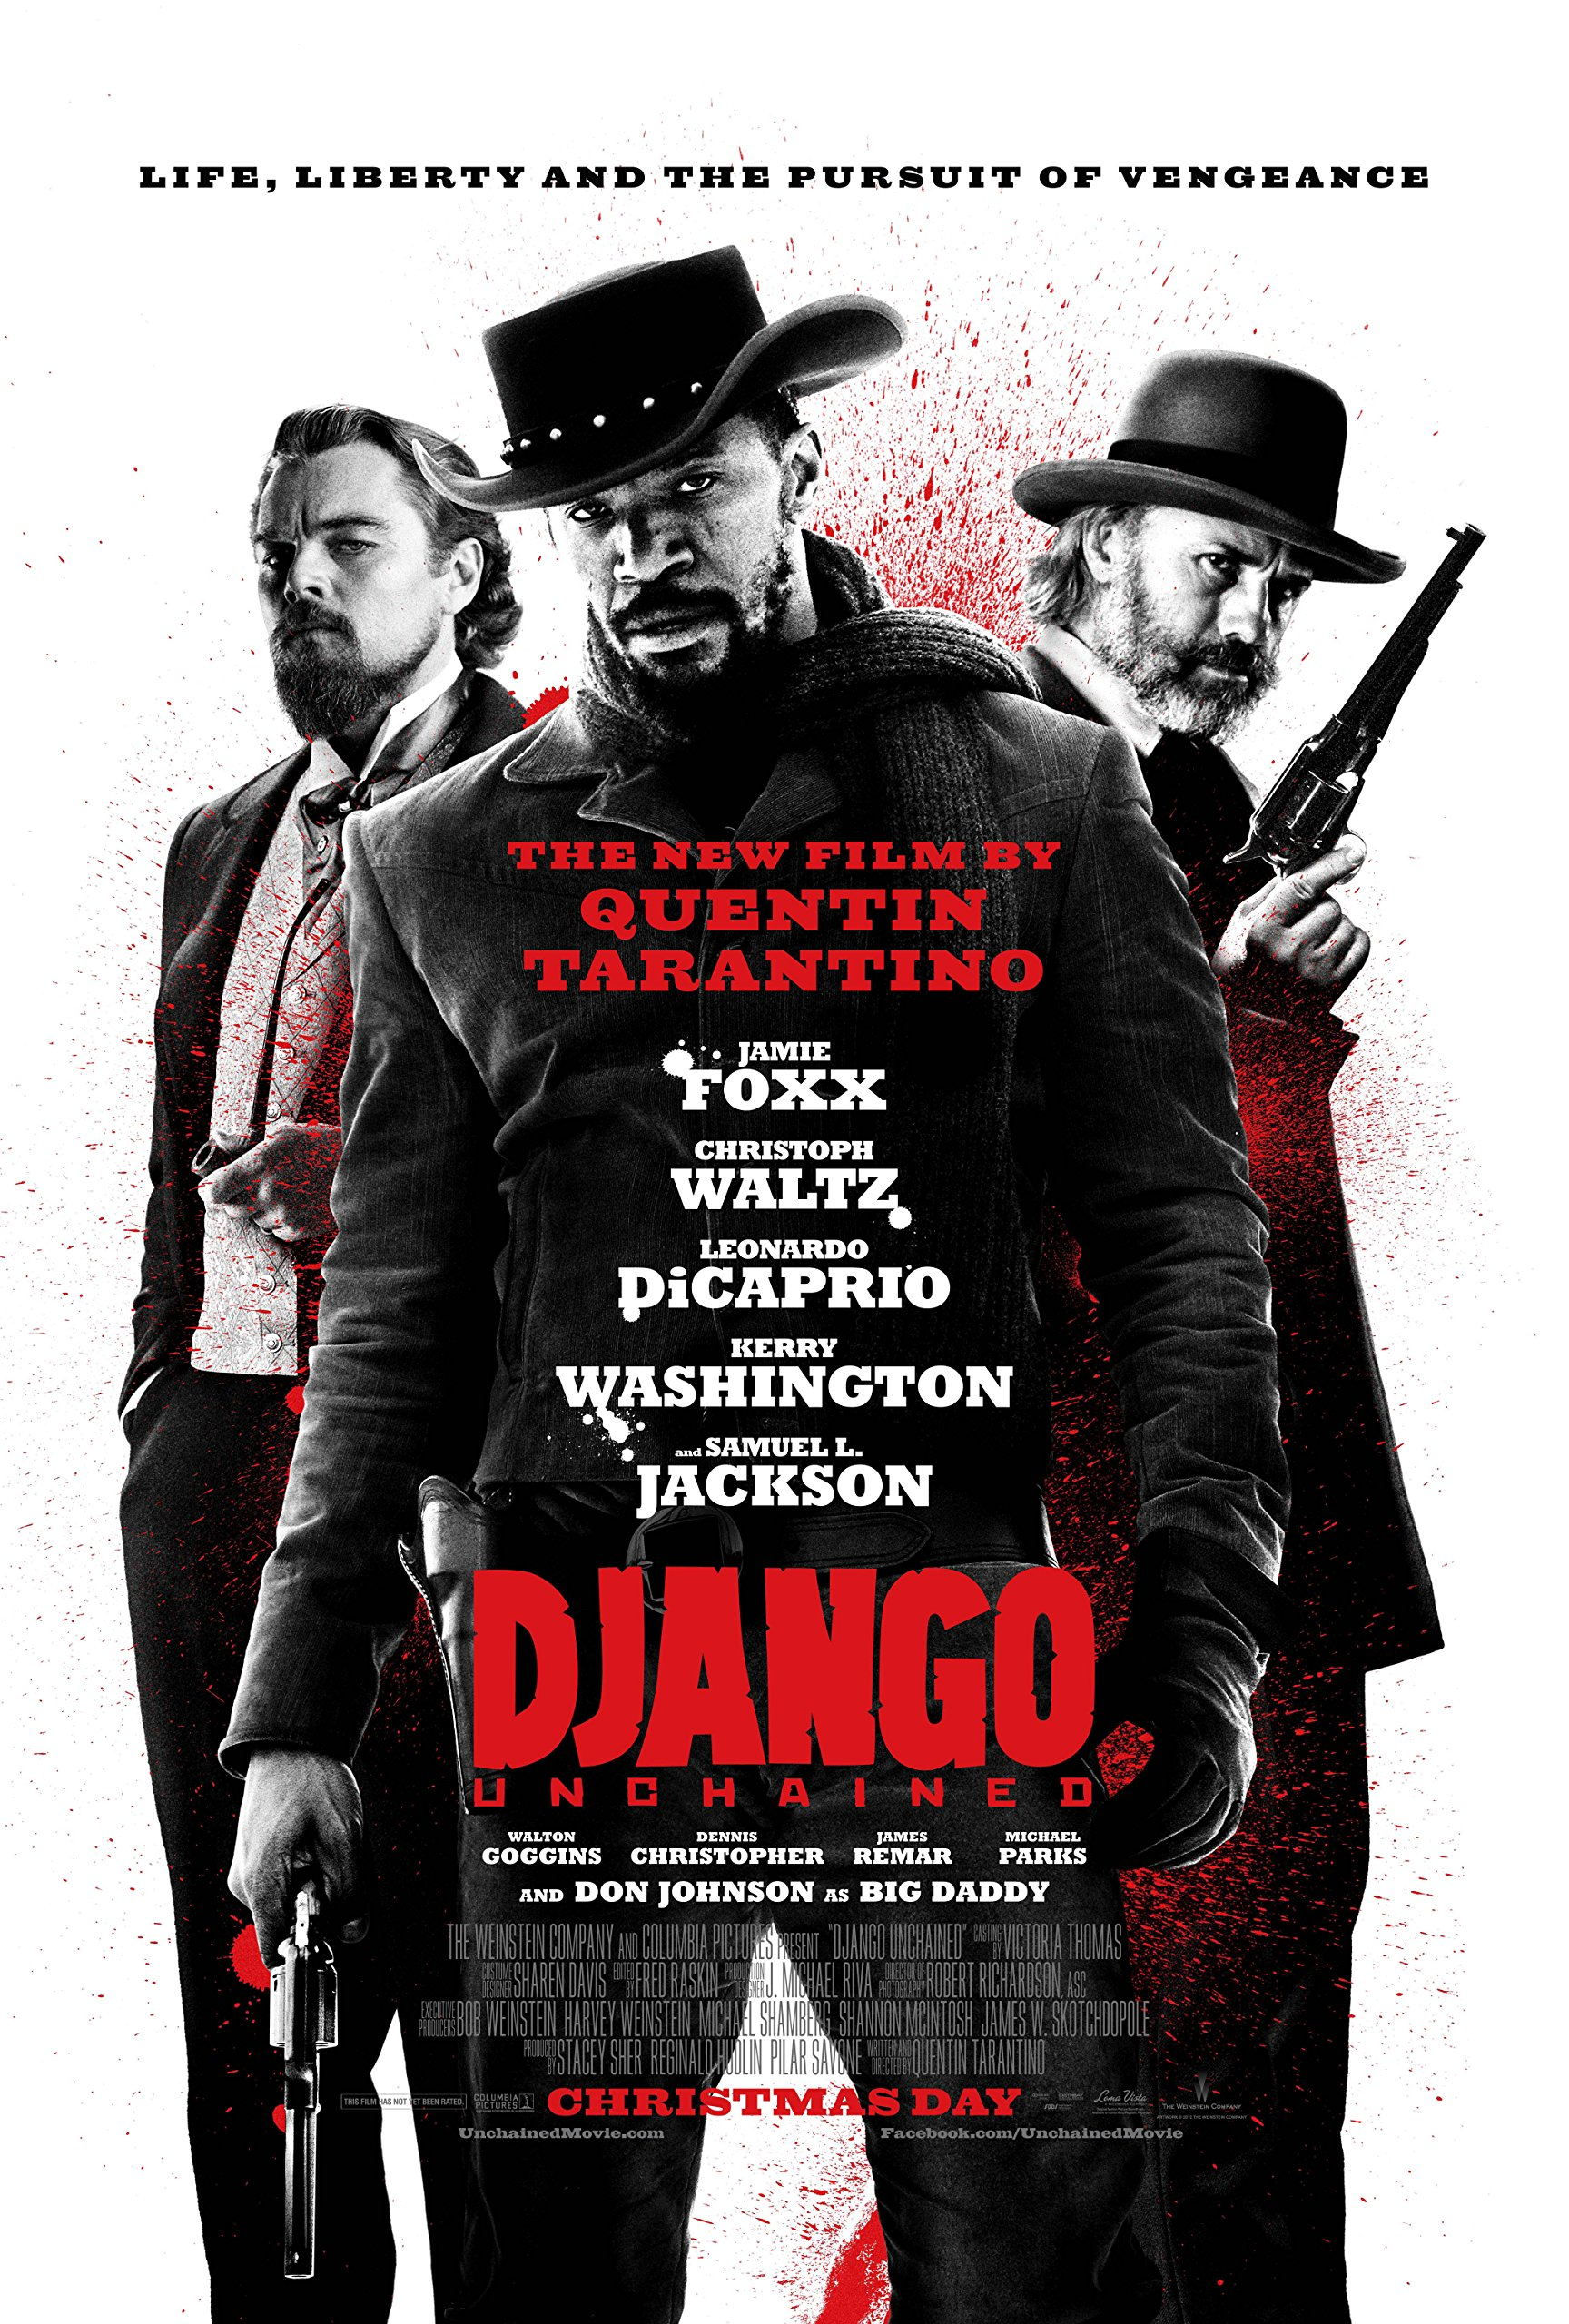 Posters USA - Django Unchained Movie Poster GLOSSY FINISH) - MOV159 (24'' x 36'' (61cm x 91.5cm))